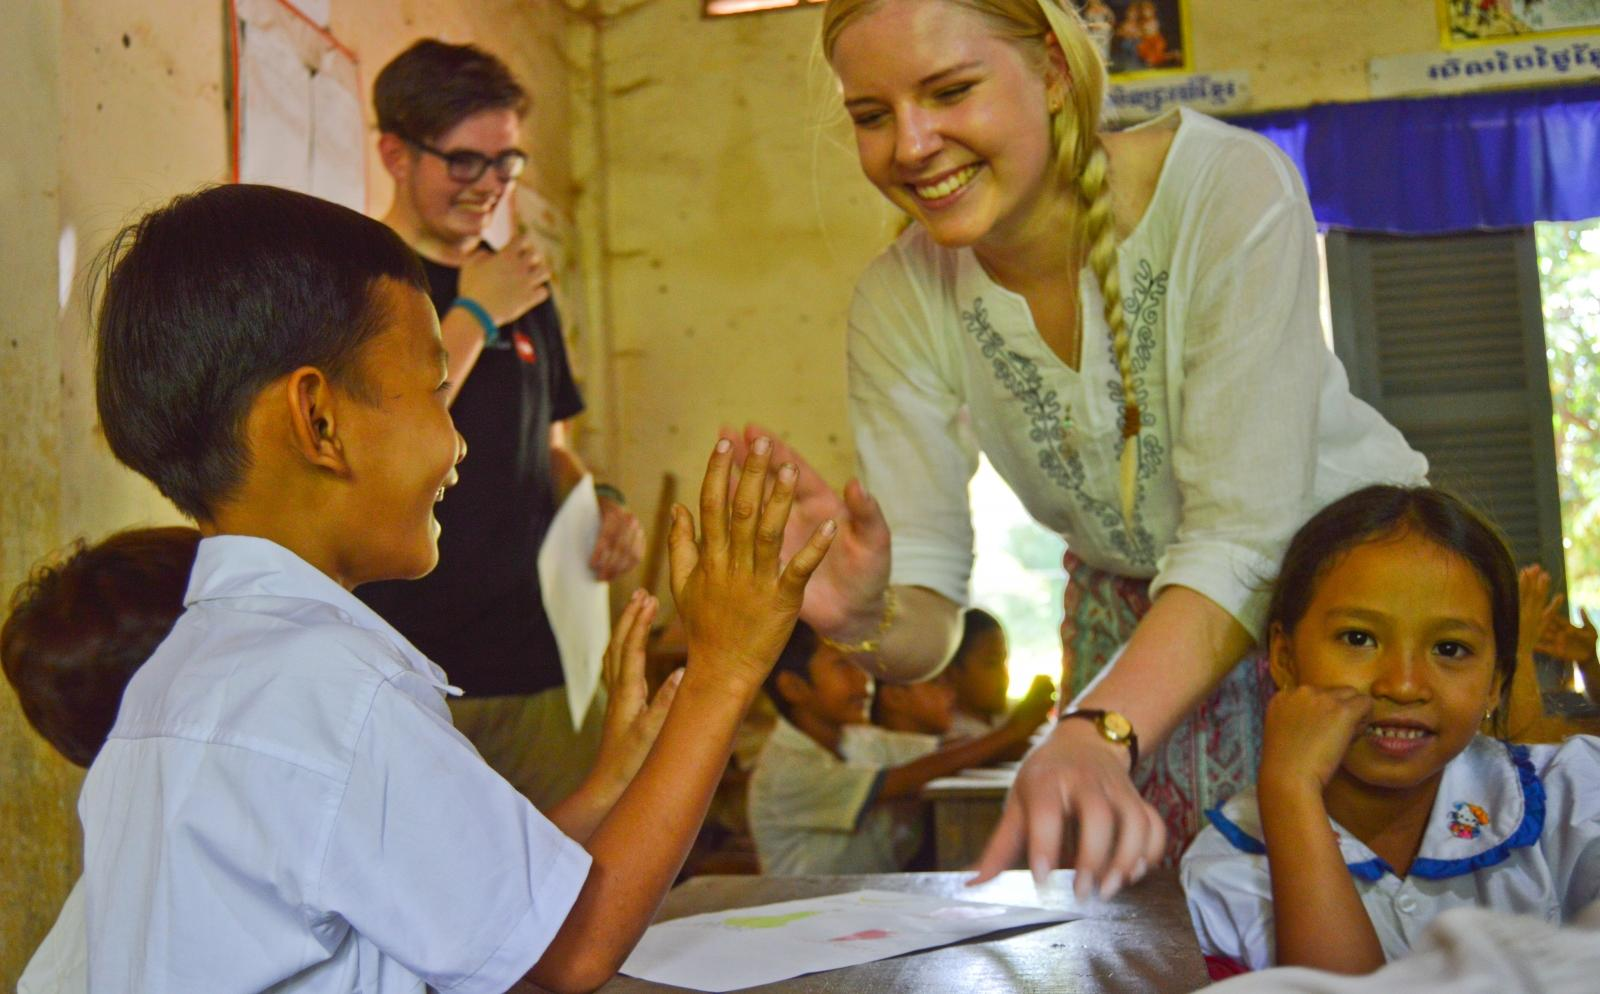 A female volunteer gives a child feedback while teaching abroad after she booked a trip overseas with us.